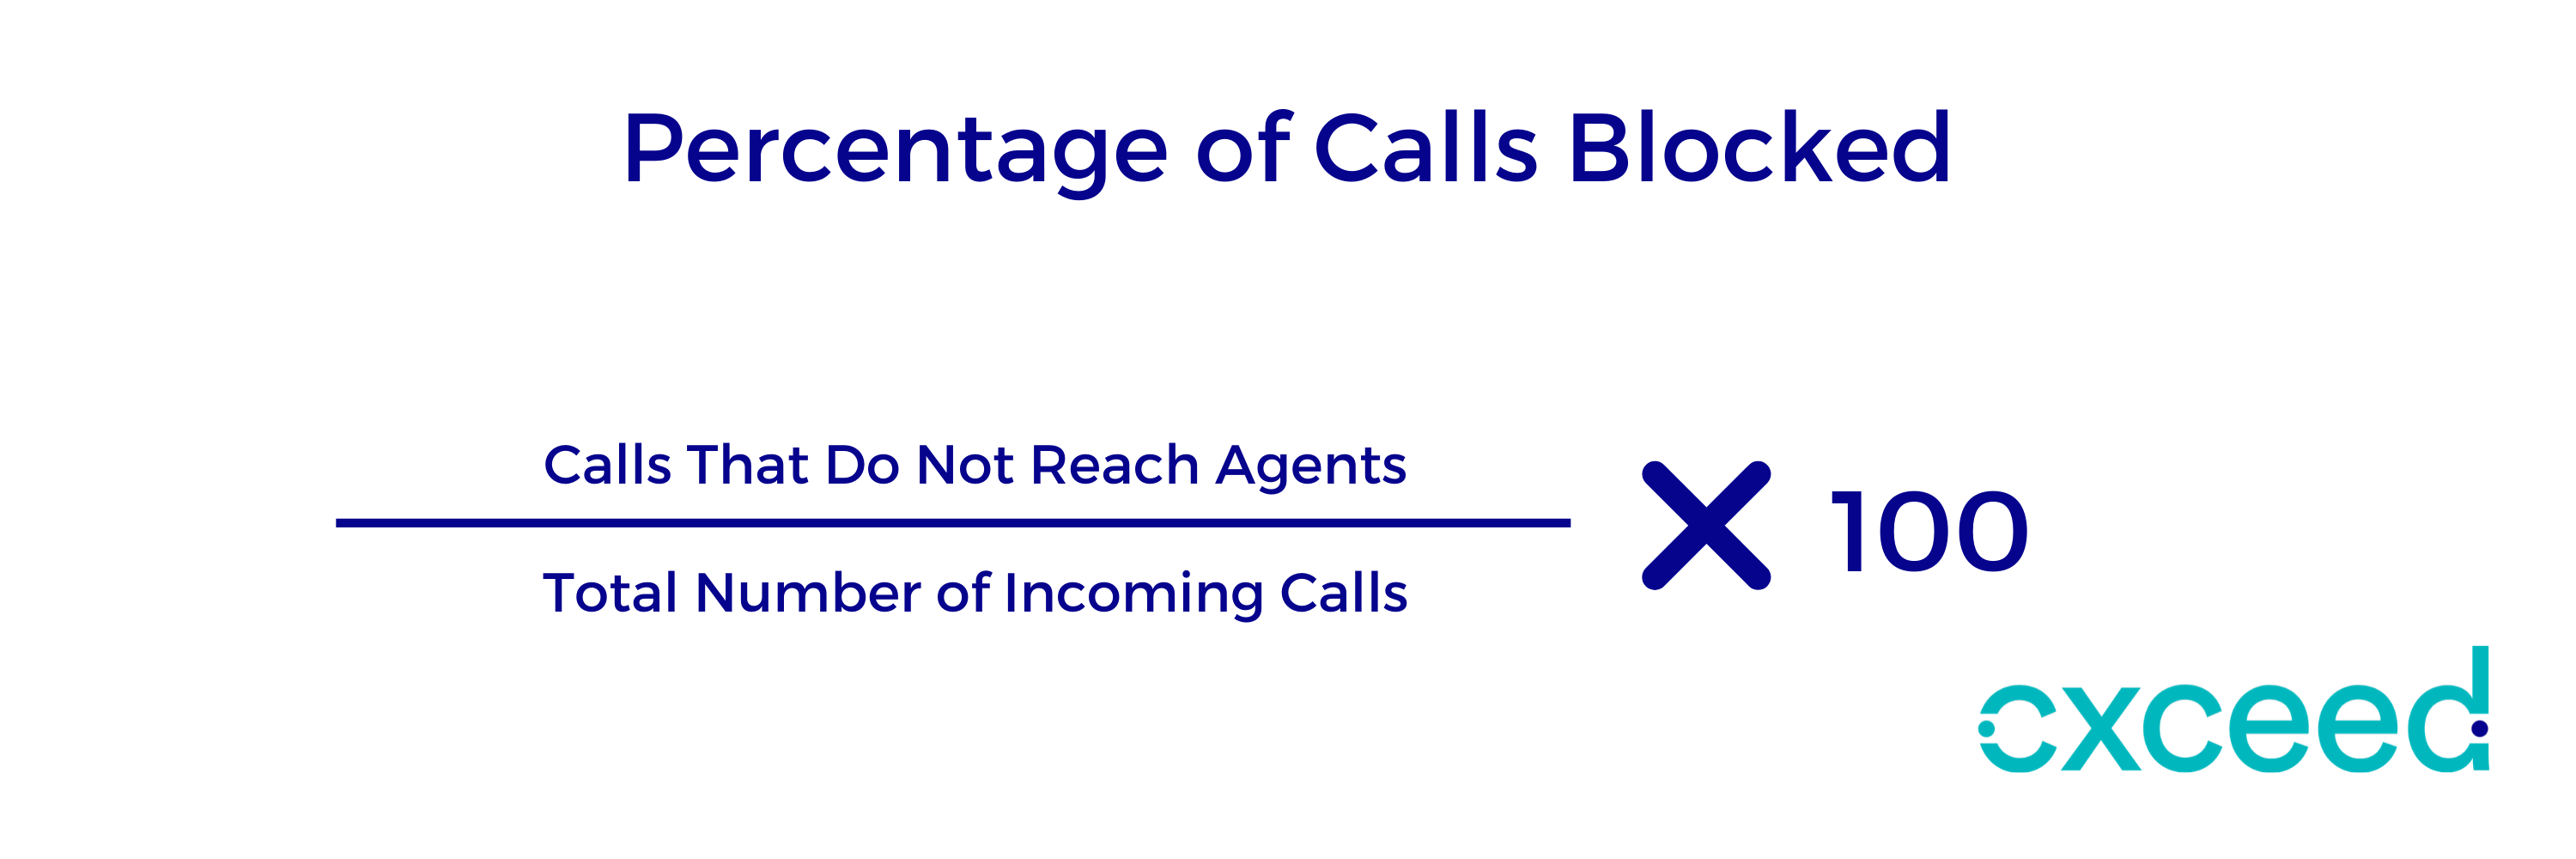 percentage of calls blocked